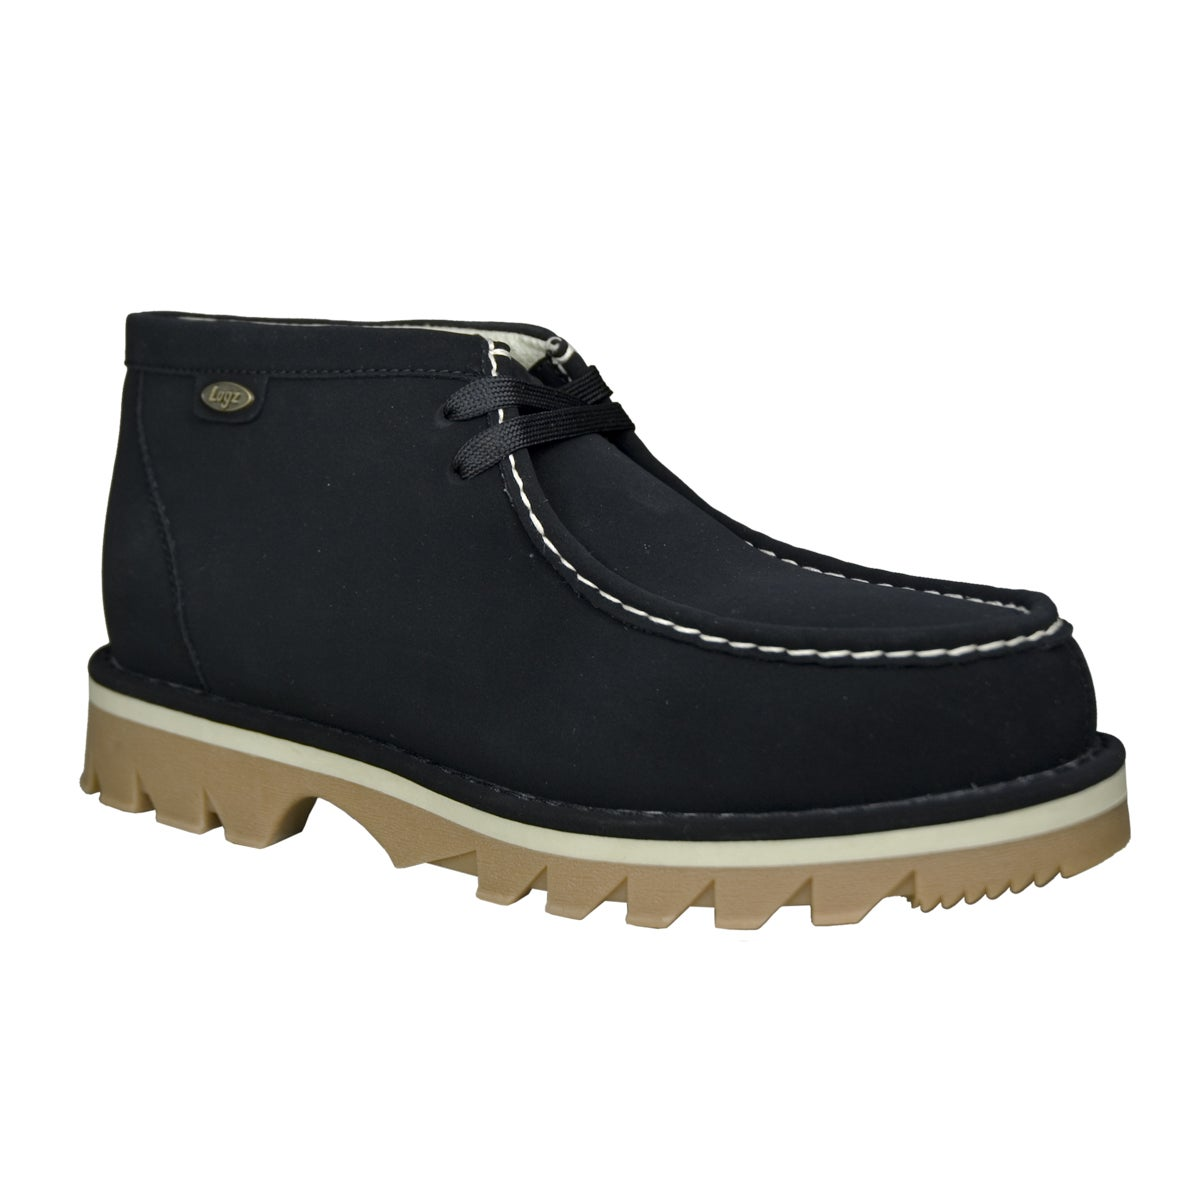 Lugz Men's Wally Mid - Black